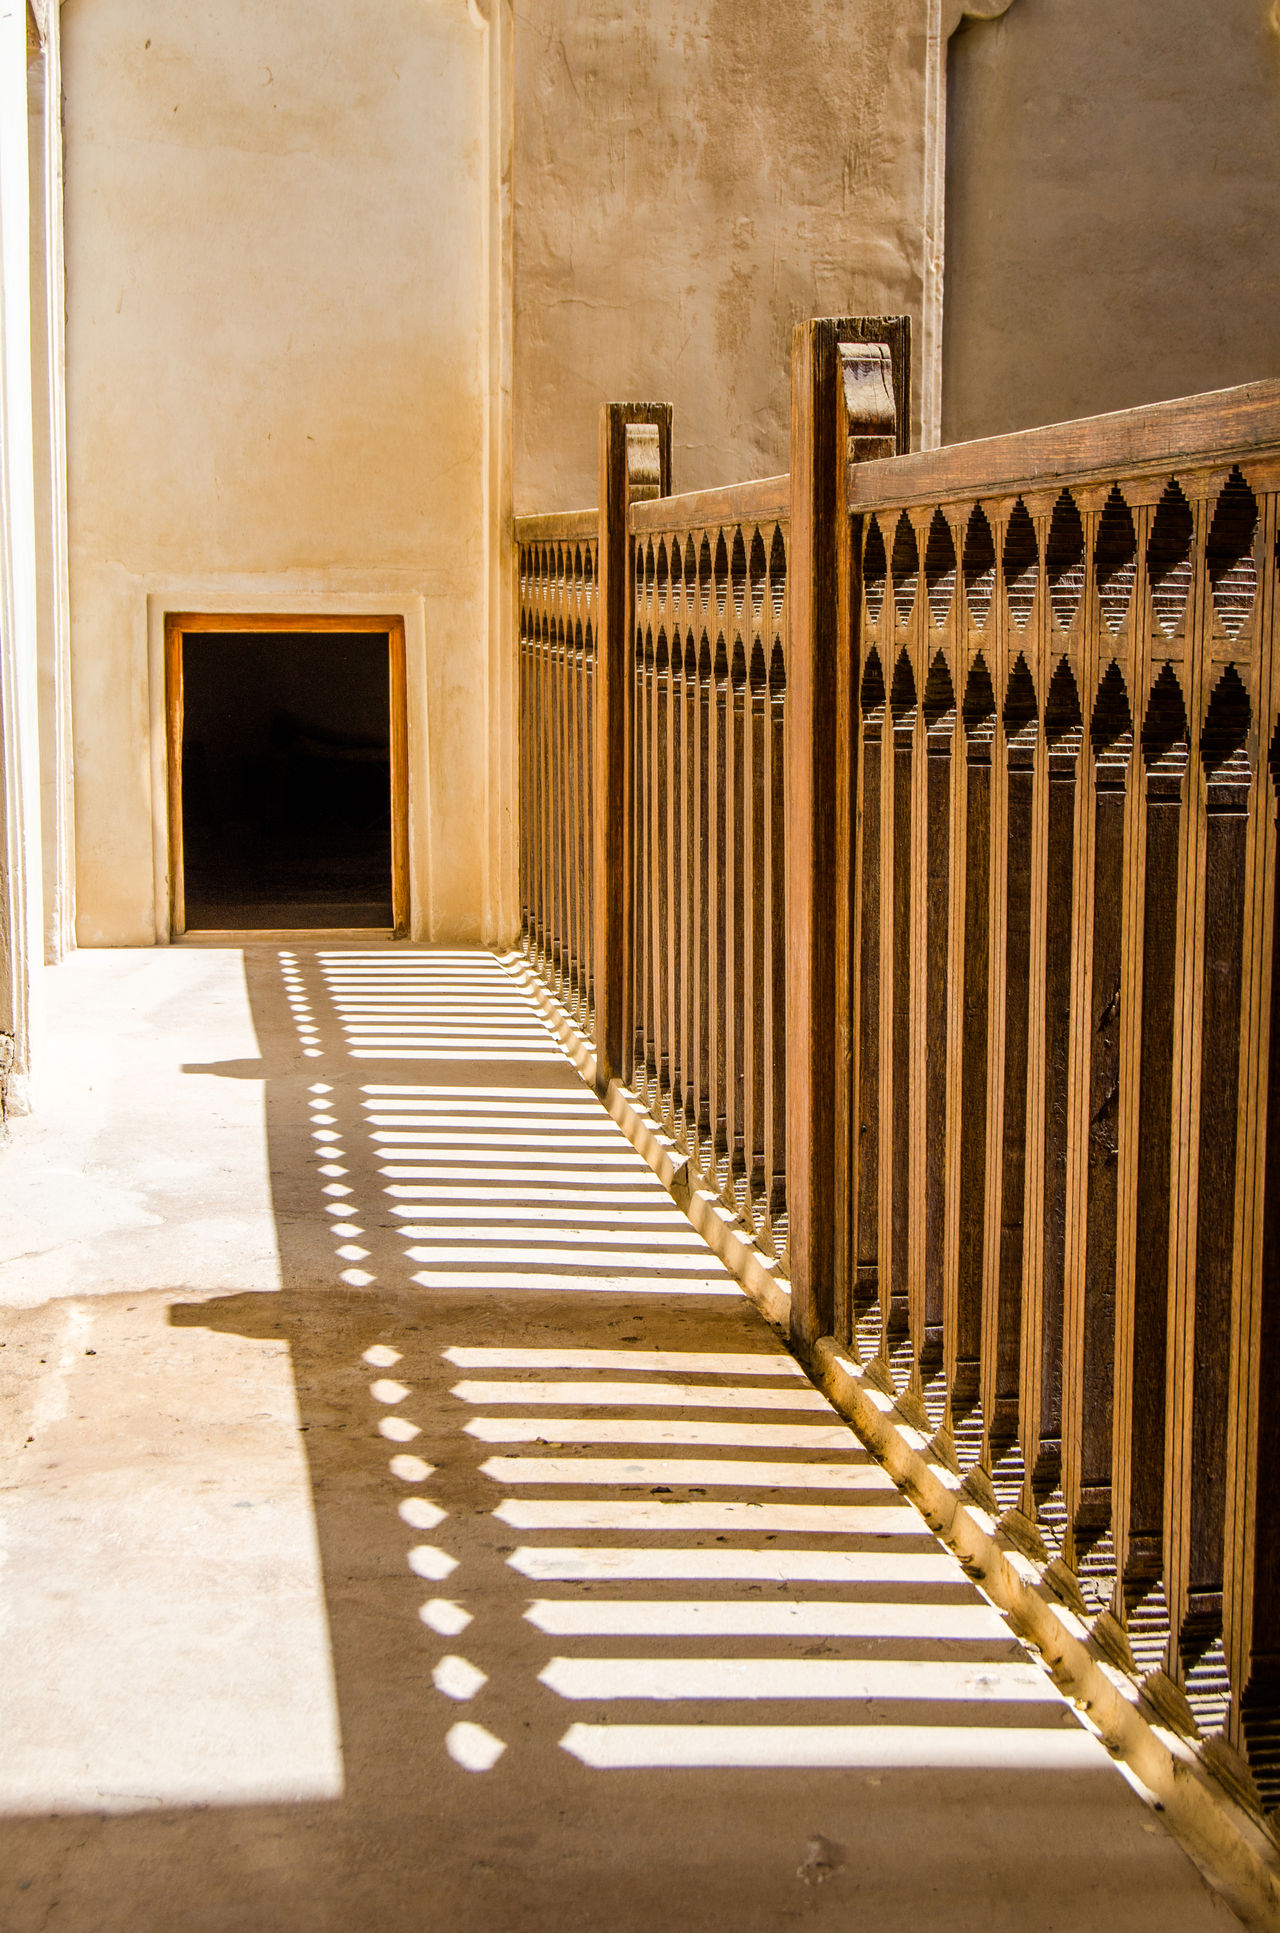 Shadows of Guilt Architecture Door Heritage Building Leading Lines Light Light And Shadow Oman Patterns Railing Shadow Sunlight Sunlight And Shadow Wooden